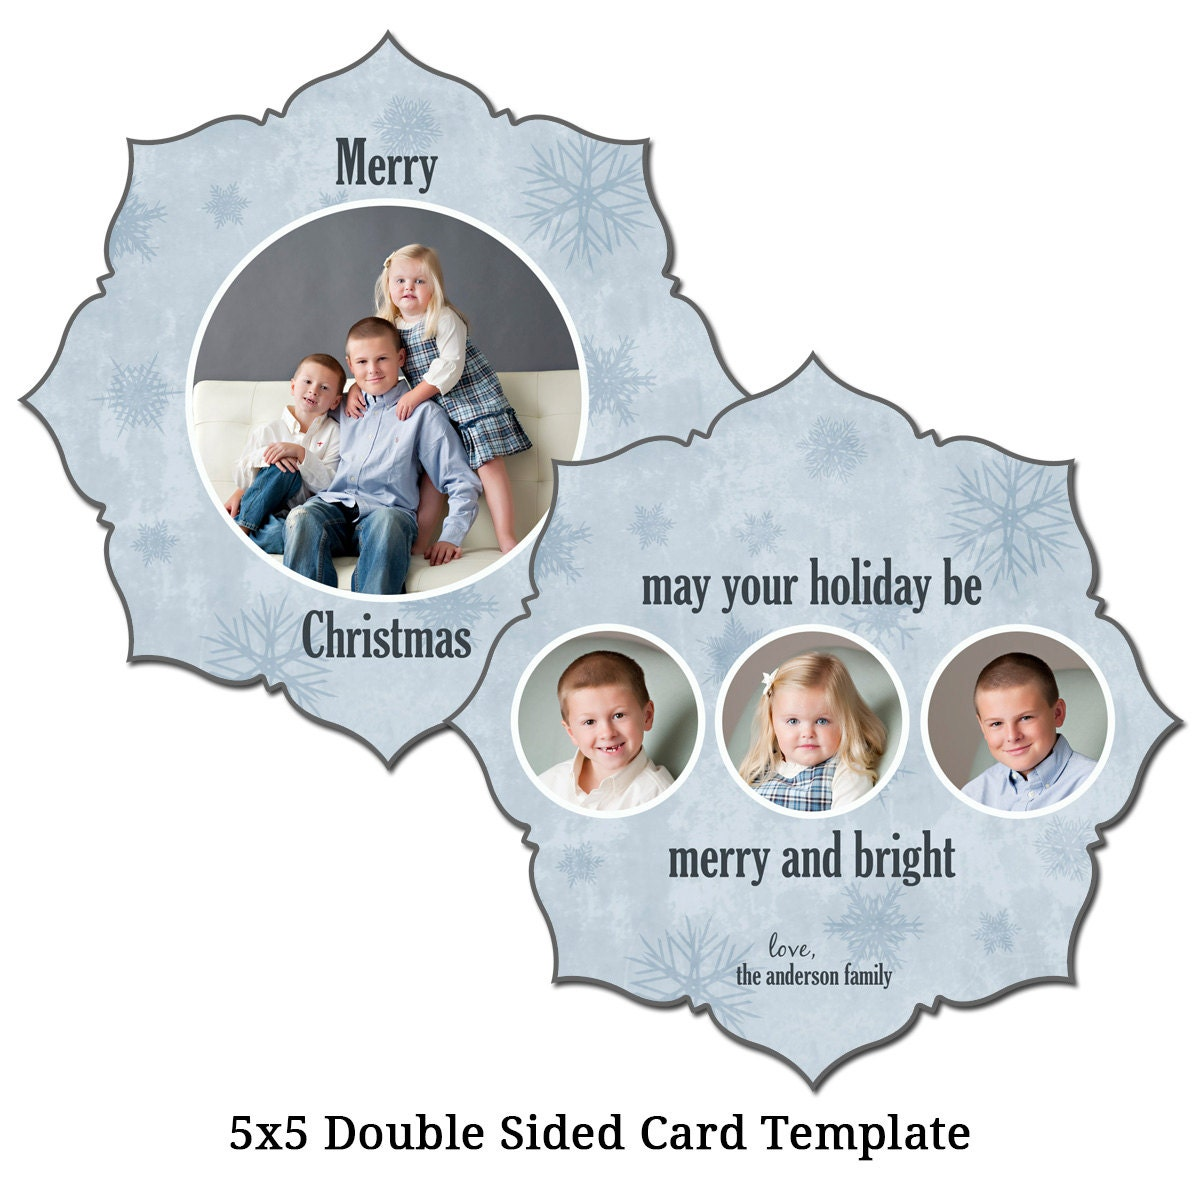 5x5 double sided christmas card template holiday card. Black Bedroom Furniture Sets. Home Design Ideas